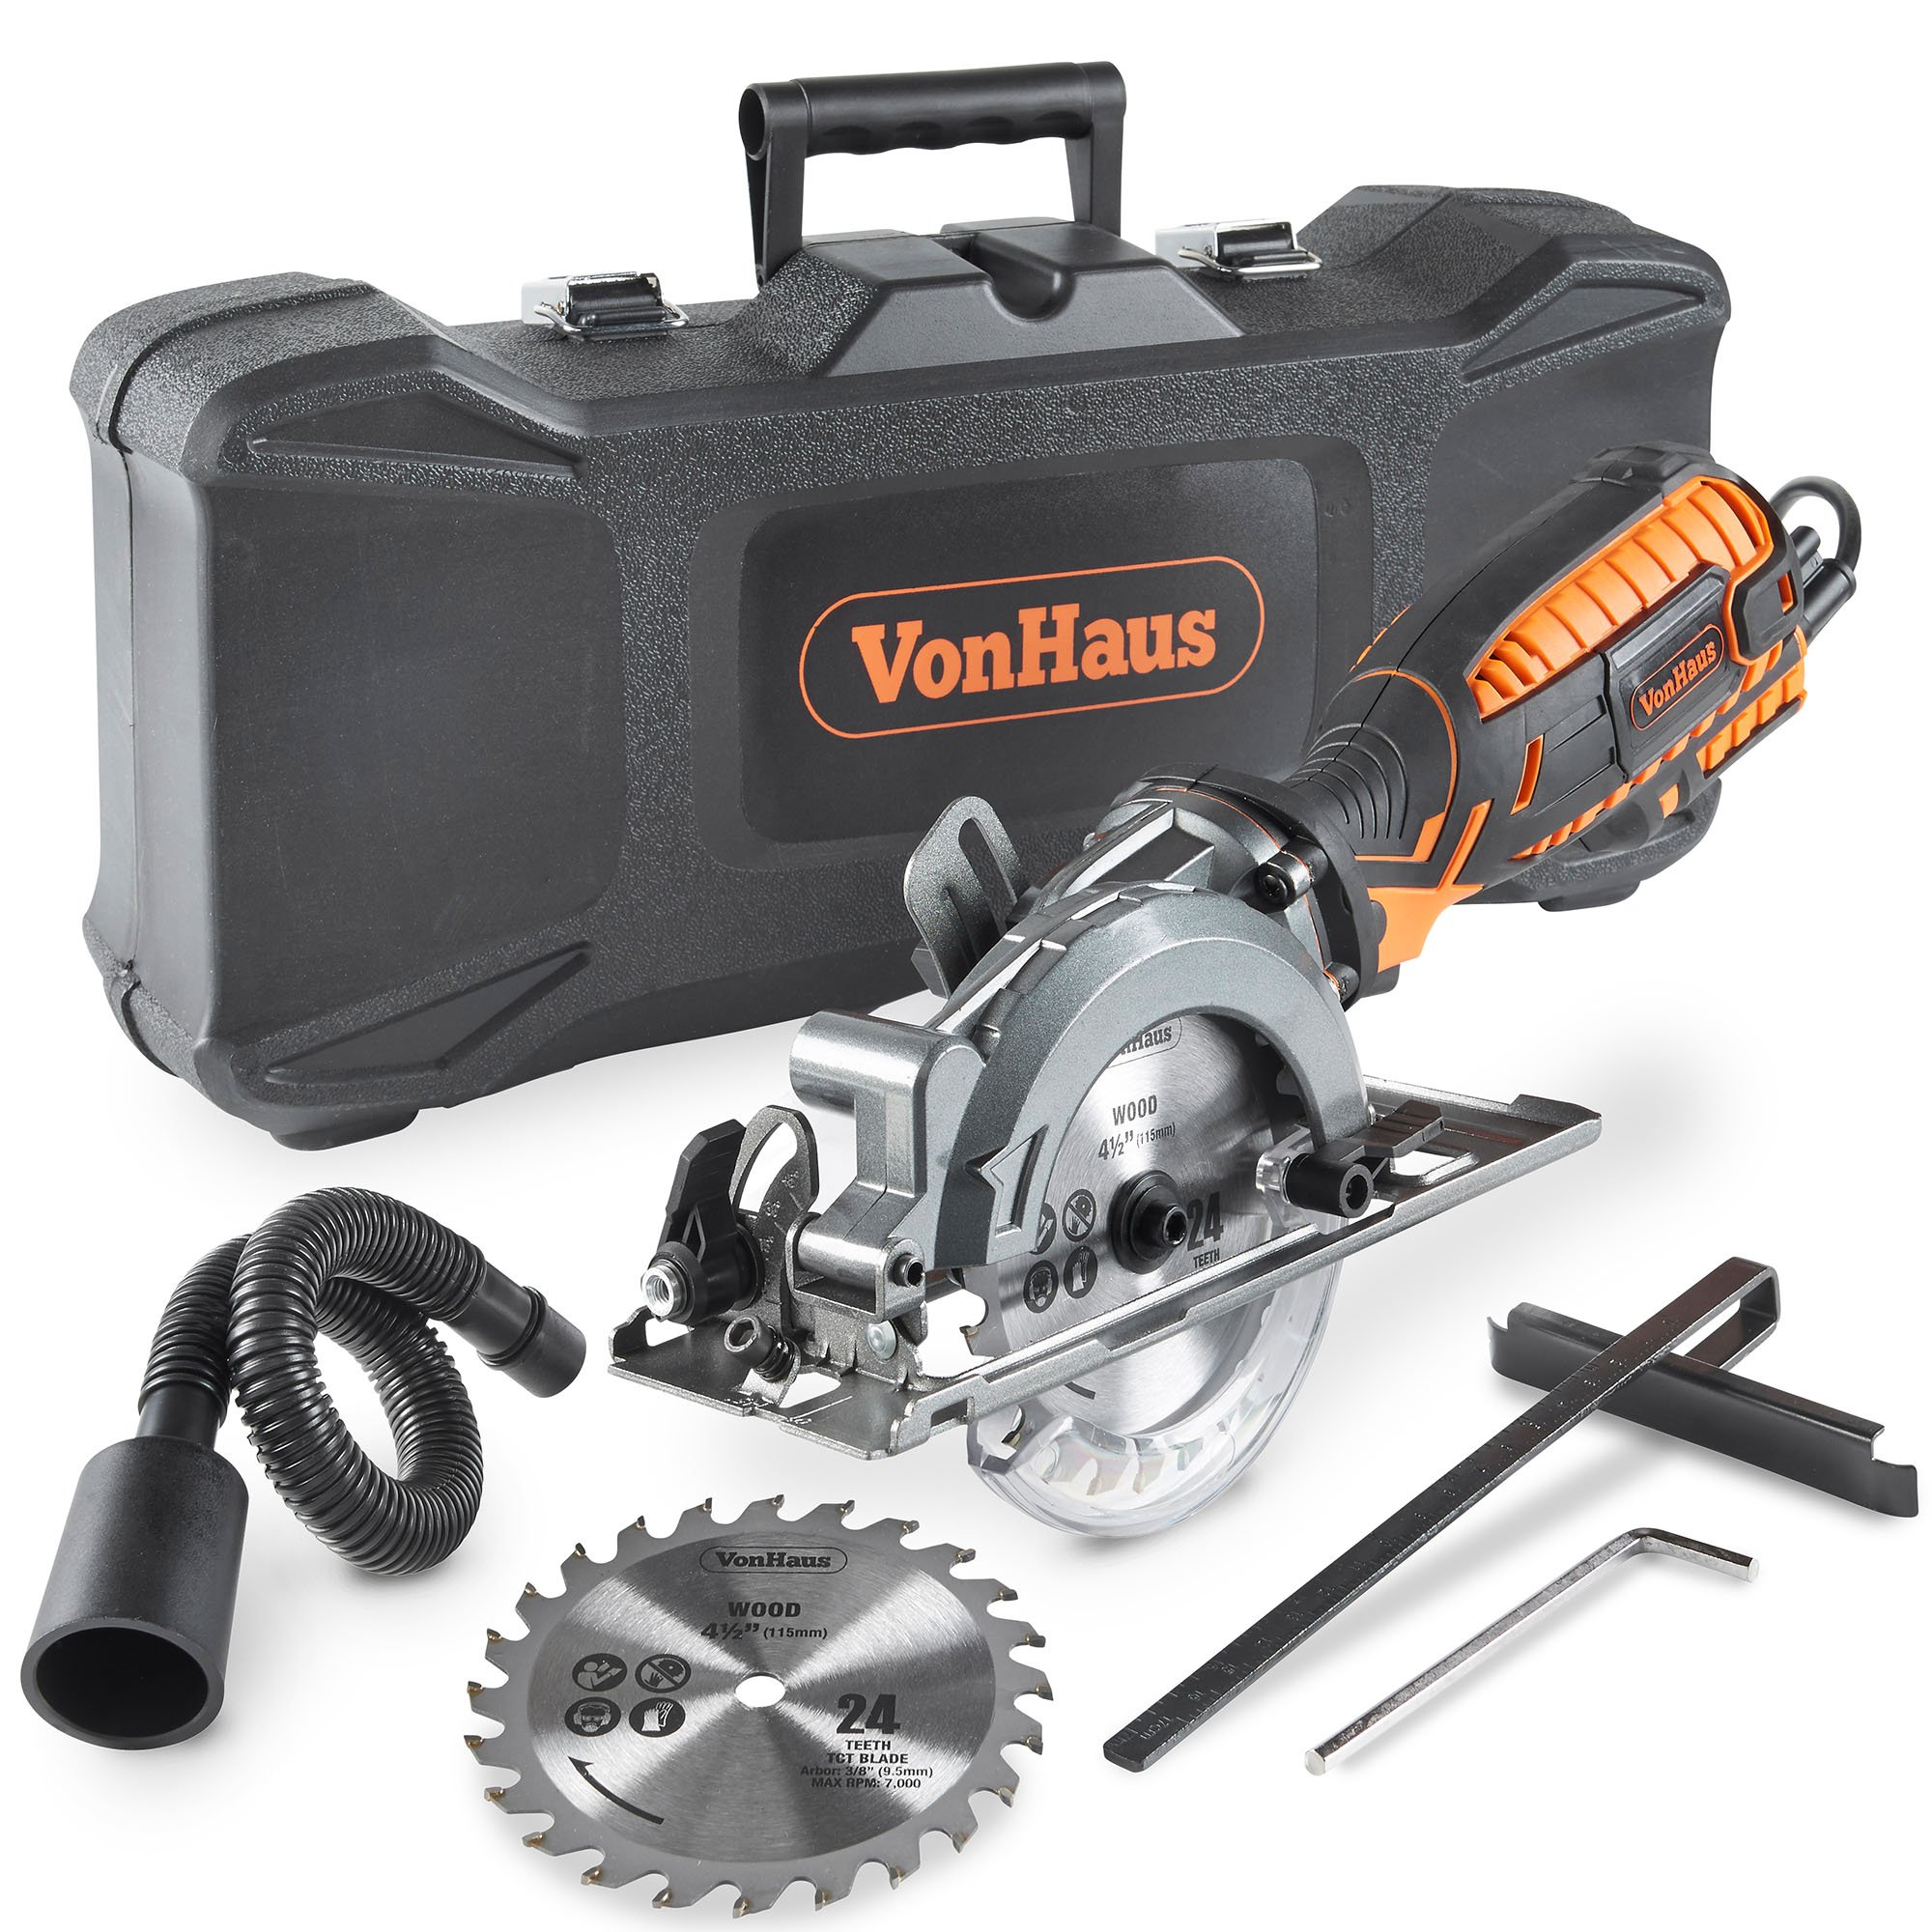 VonHaus 5.8 Amp Corded Ultra-Compact Circular Saw - 3,500 RPM with Miter Function, Dust Port, Carry Storage Case, Vacuum Hose and 2x 24T Wood Blade Kit